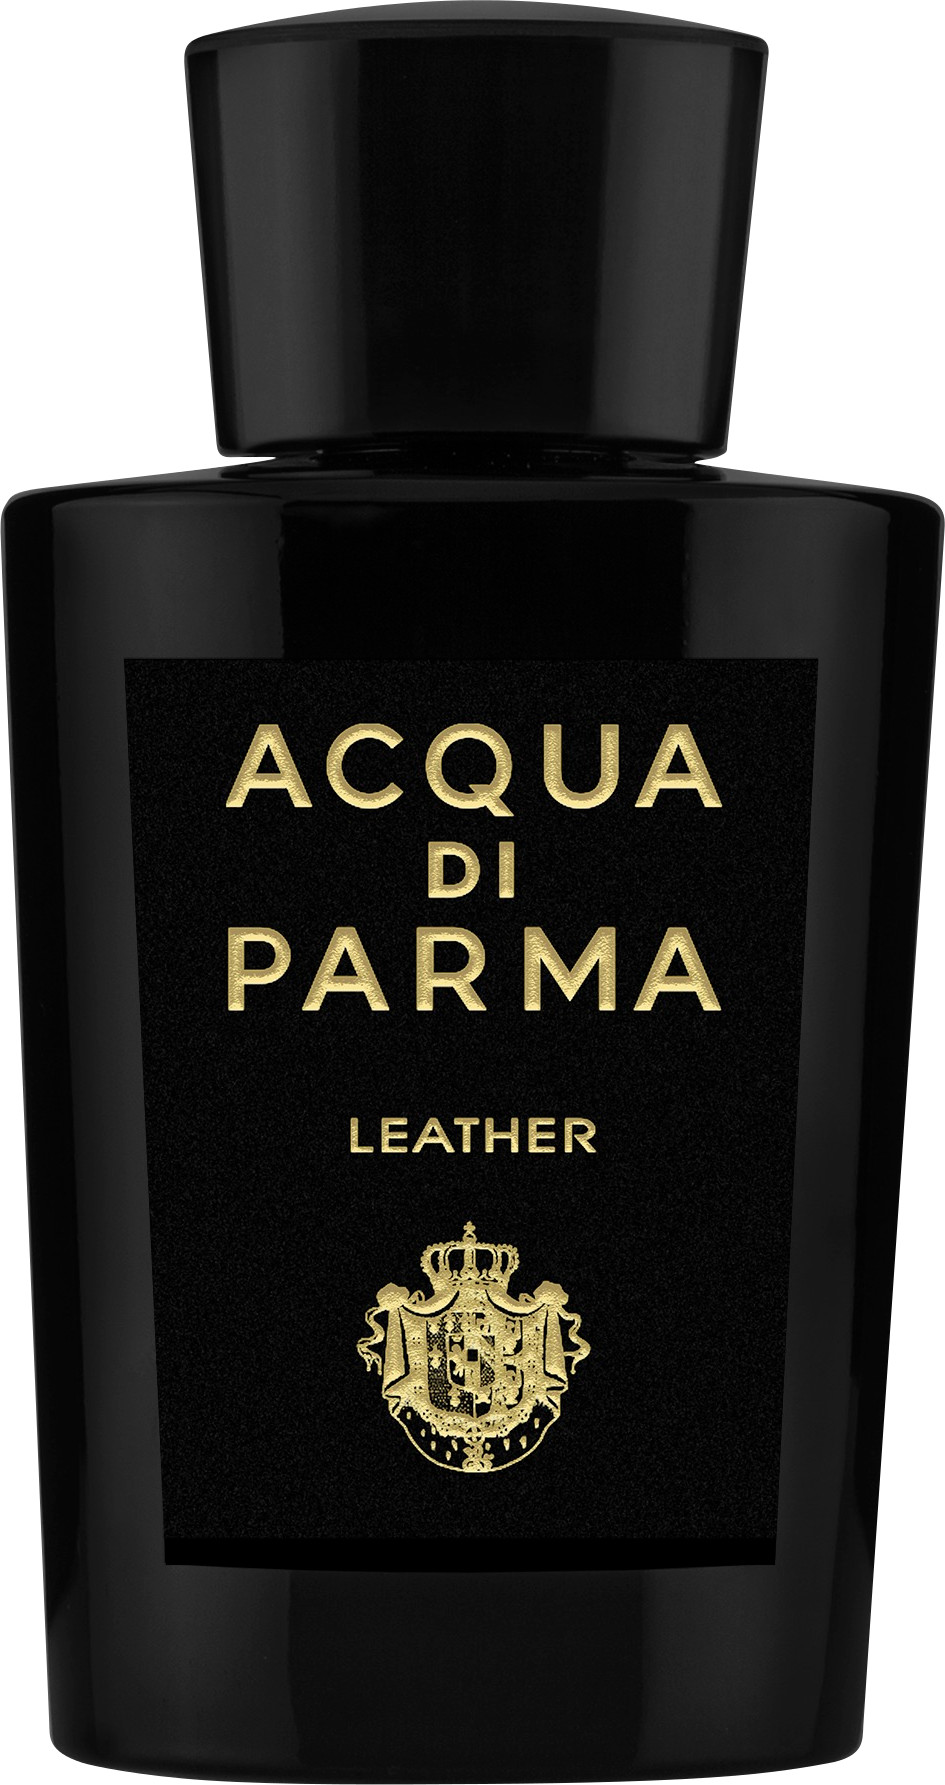 Fragrance Acqua Di Parma Leather Eau de Parfum